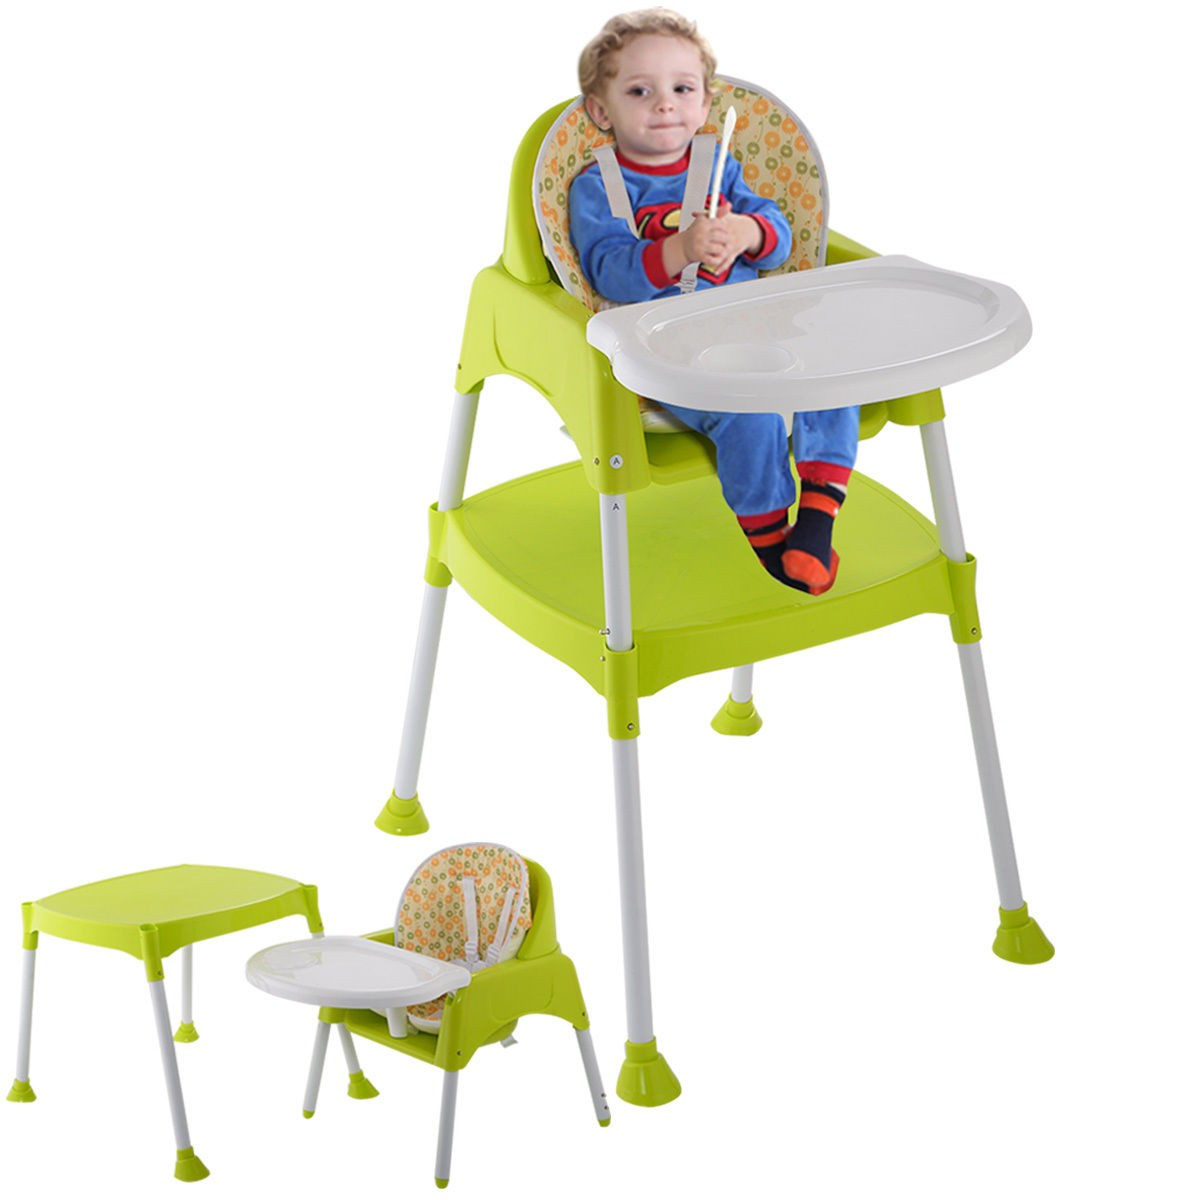 3 in 1 Baby High Chair Convertible Table Seat Booster Toddler Feeding Highchair